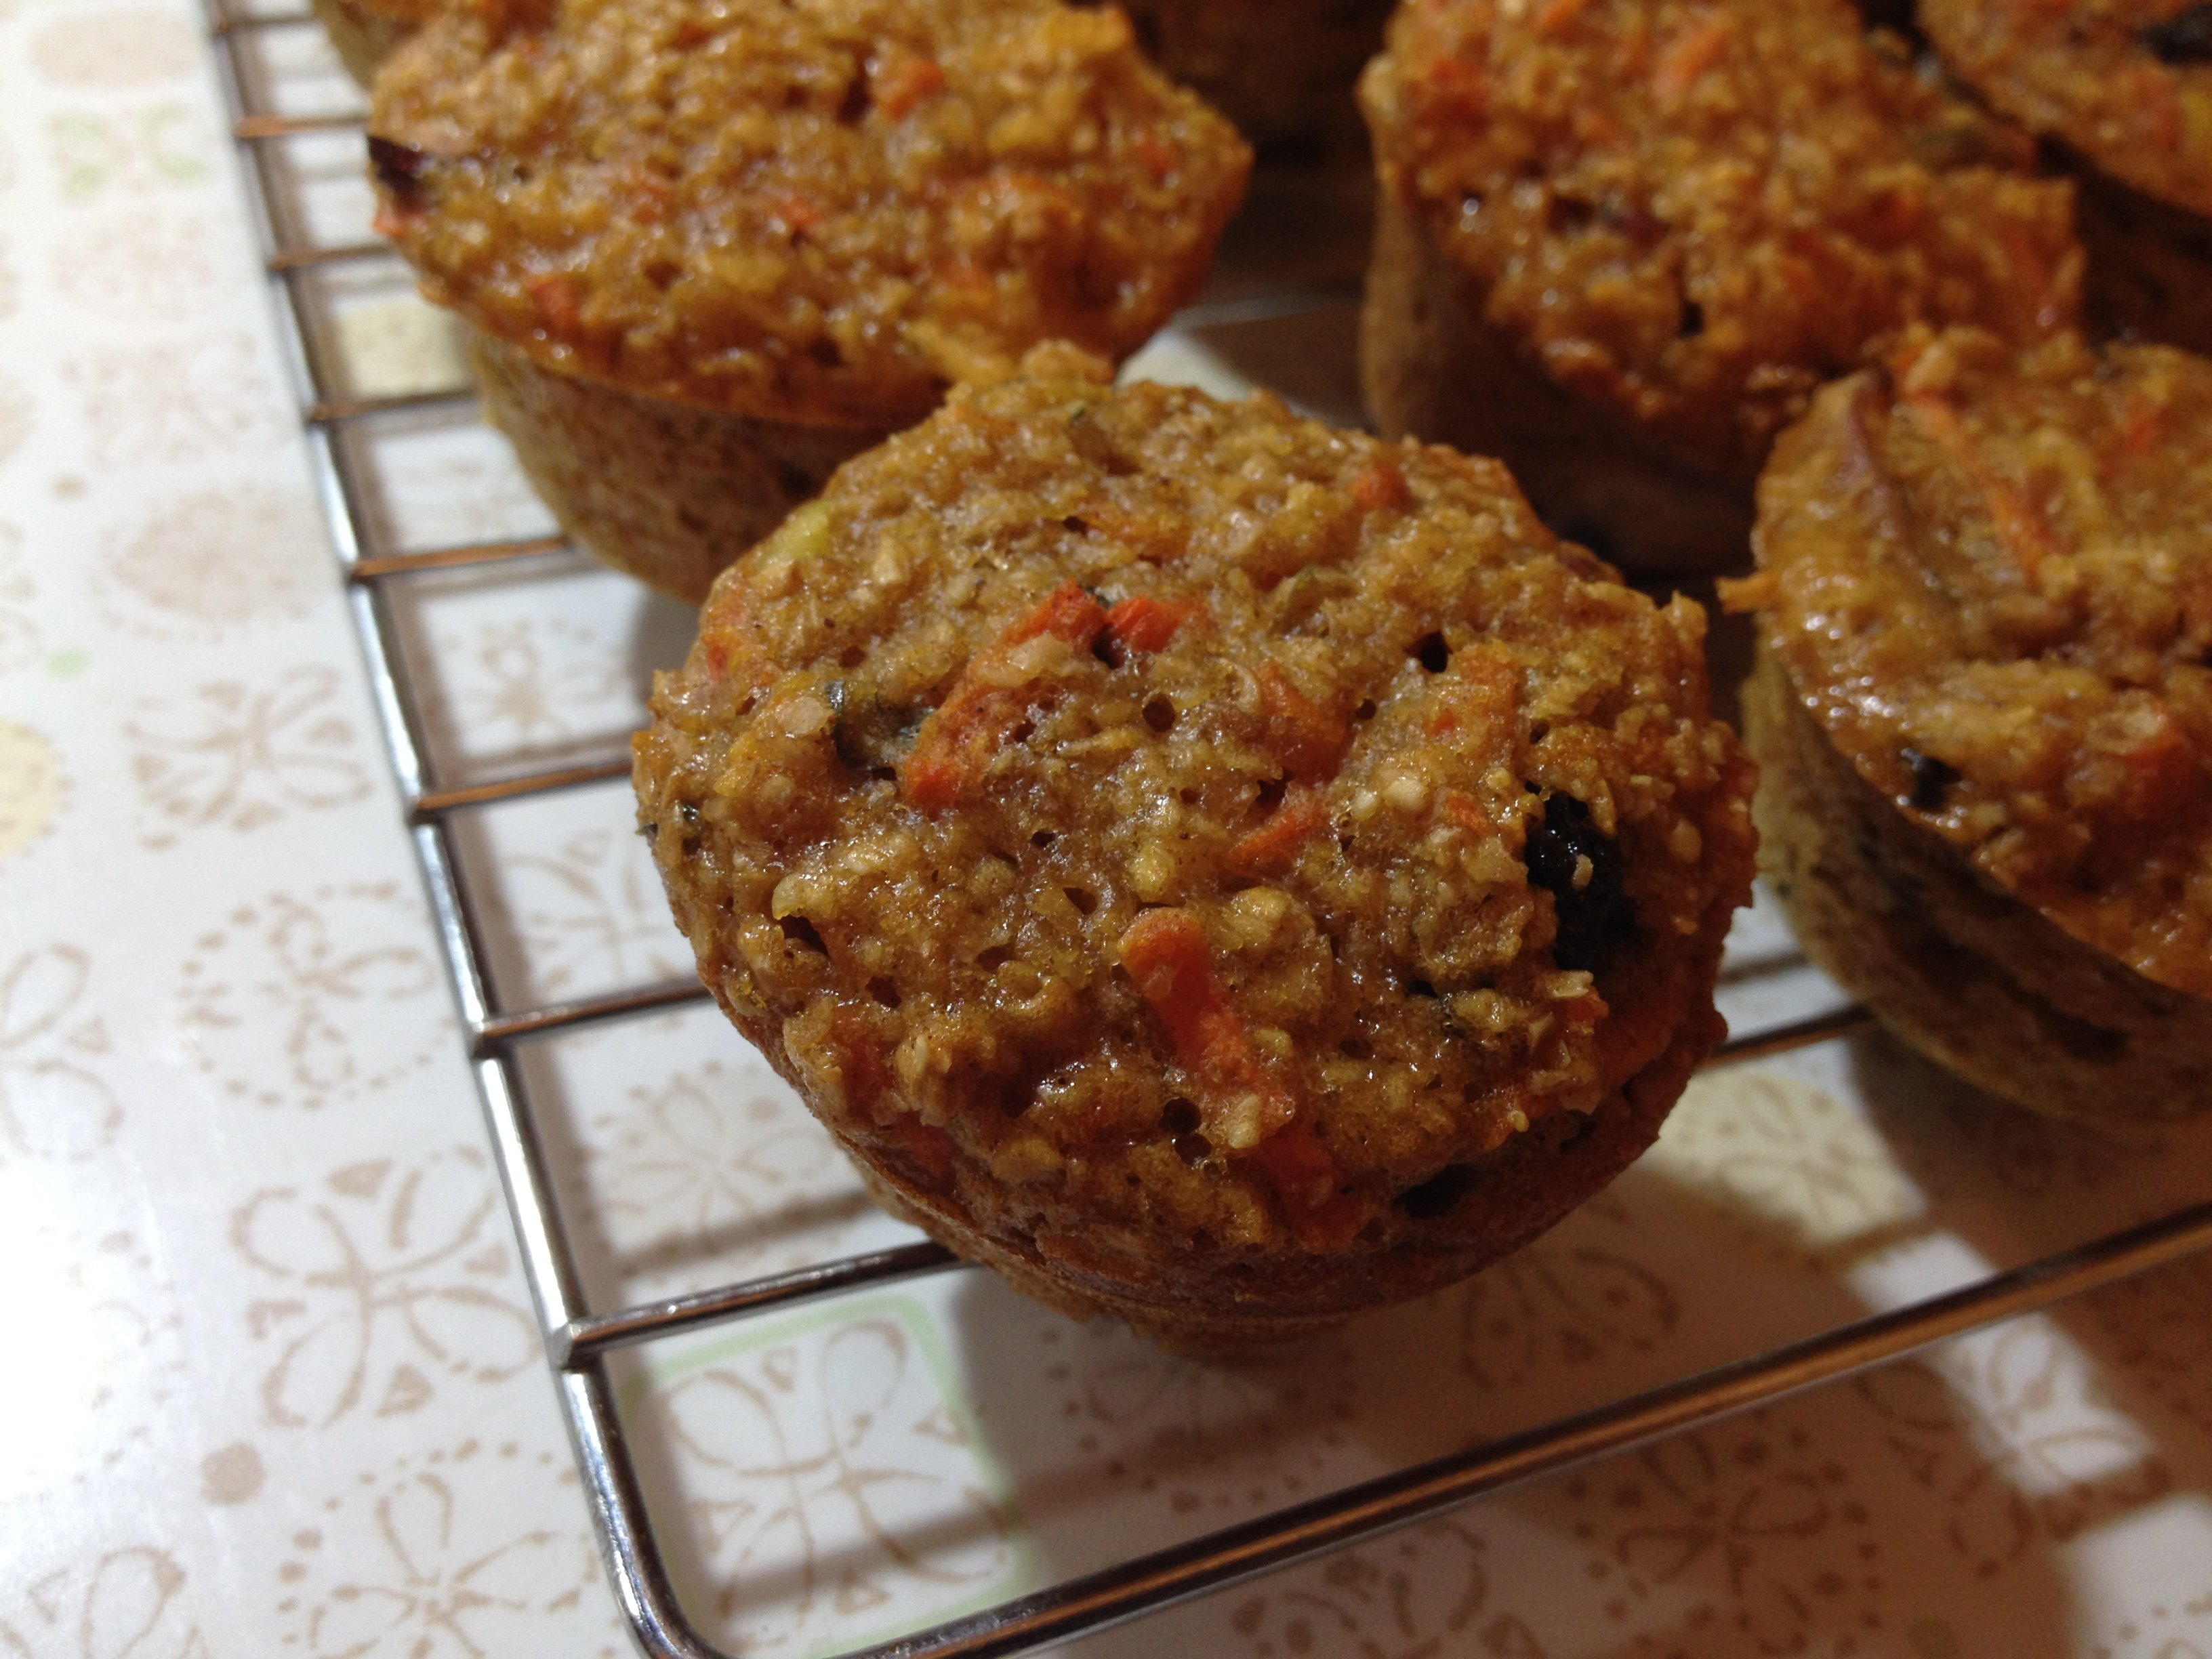 morning glory muffins for the farmers' market cooking demo!